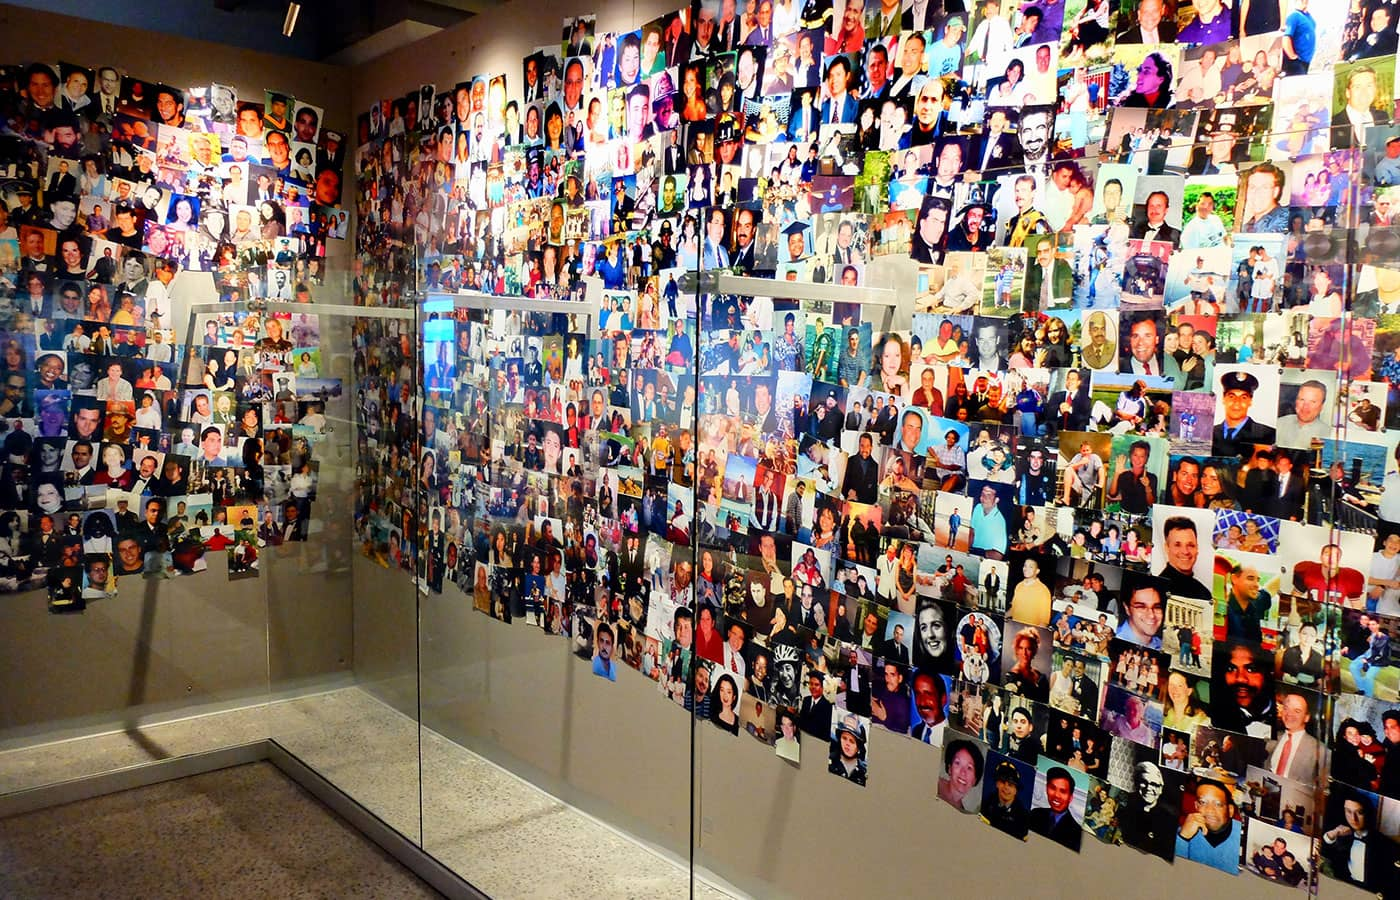 911 Tribute Museum in New York - Photo Wall